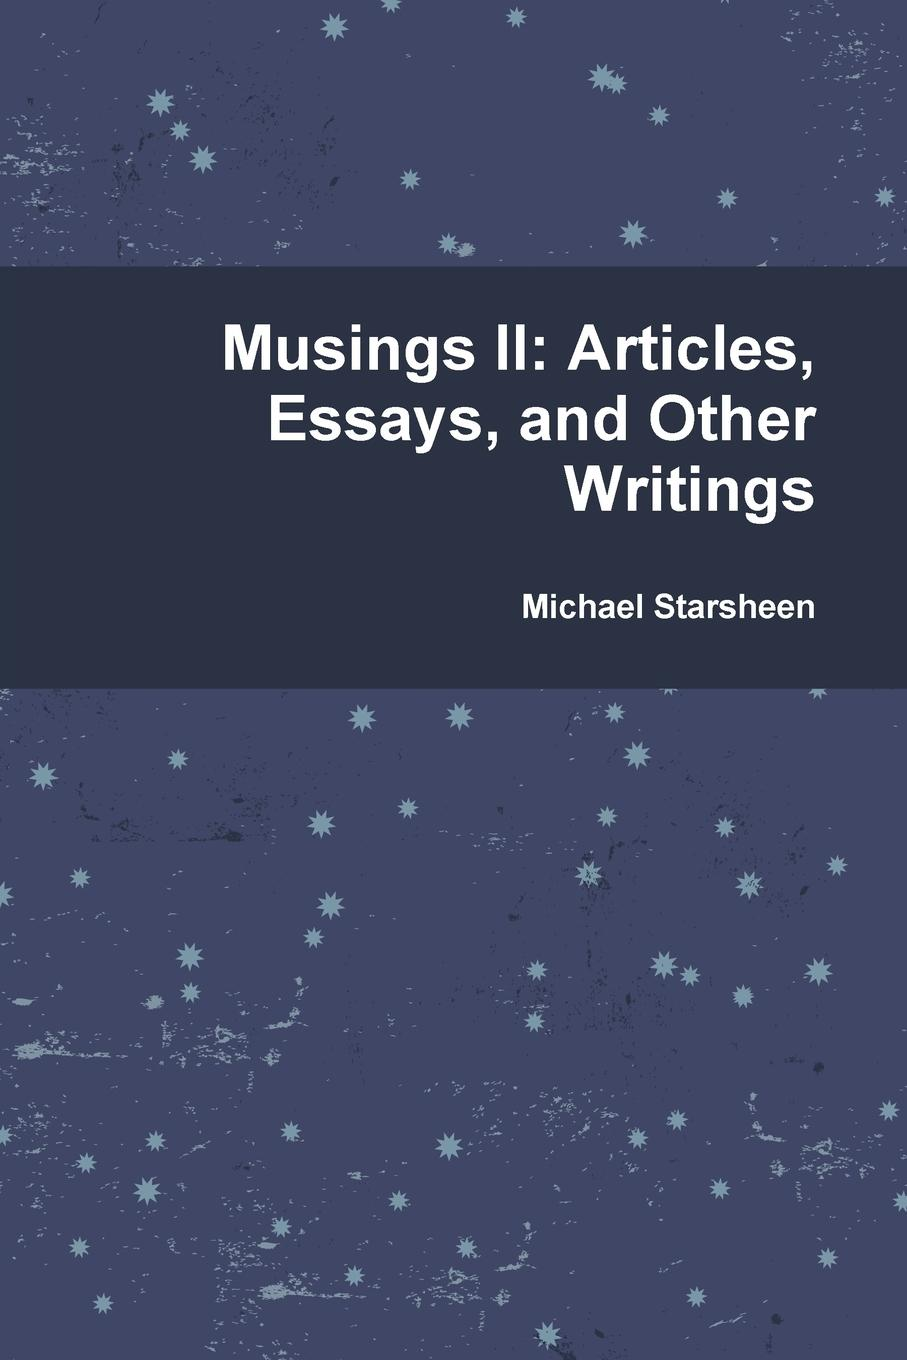 Michael Starsheen Musings II. Articles, Essays, and Other Writings